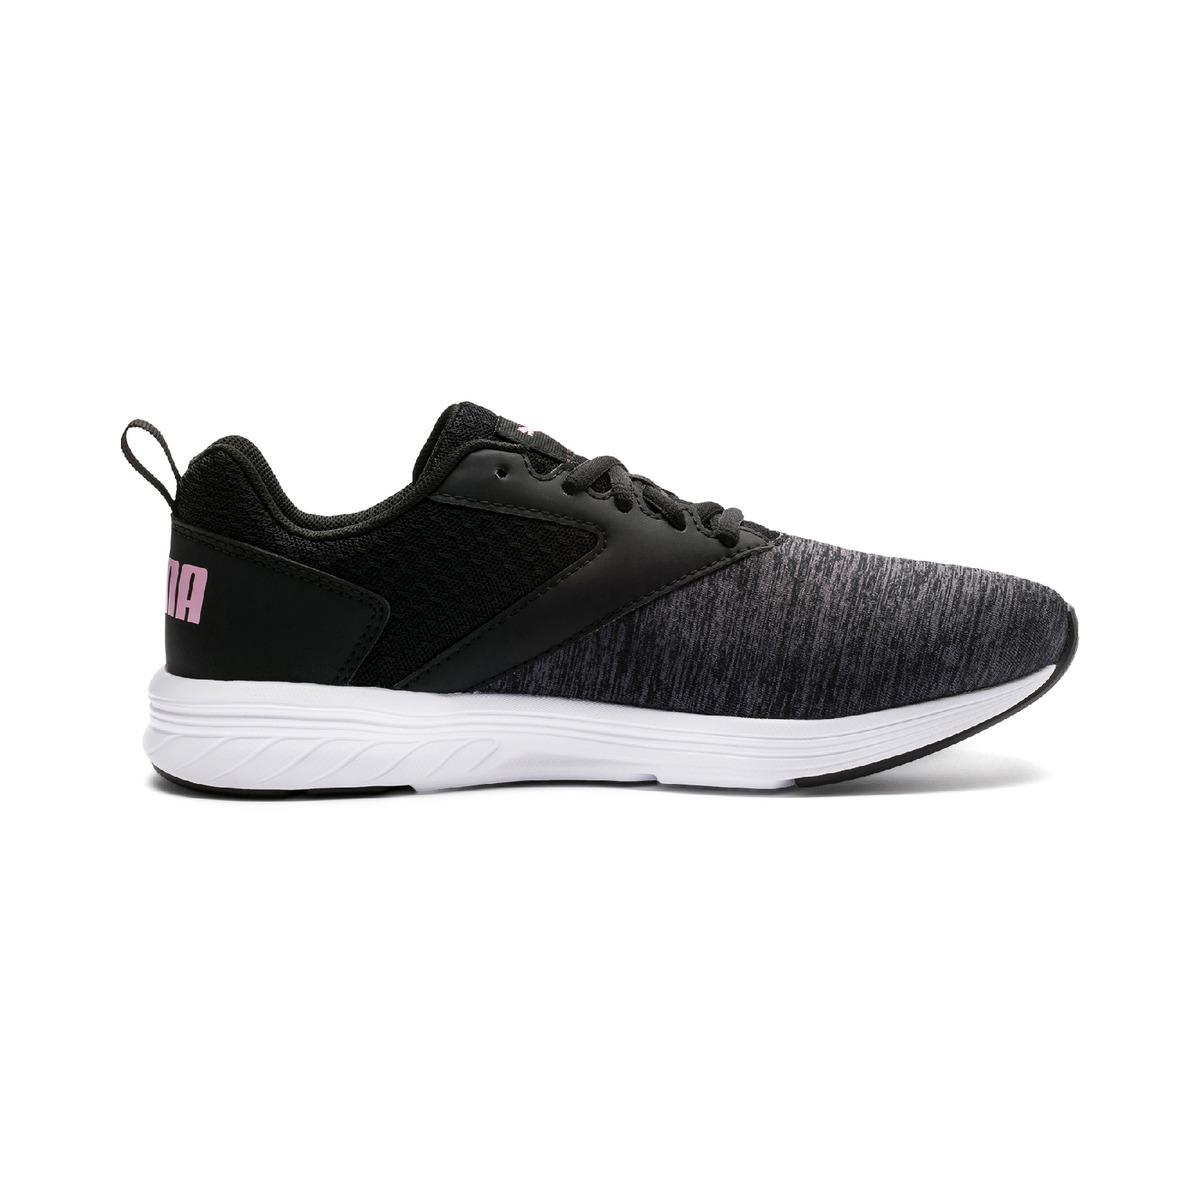 a5c9514fdfad Lyst - PUMA Nrgy Comet Running Shoes in Black